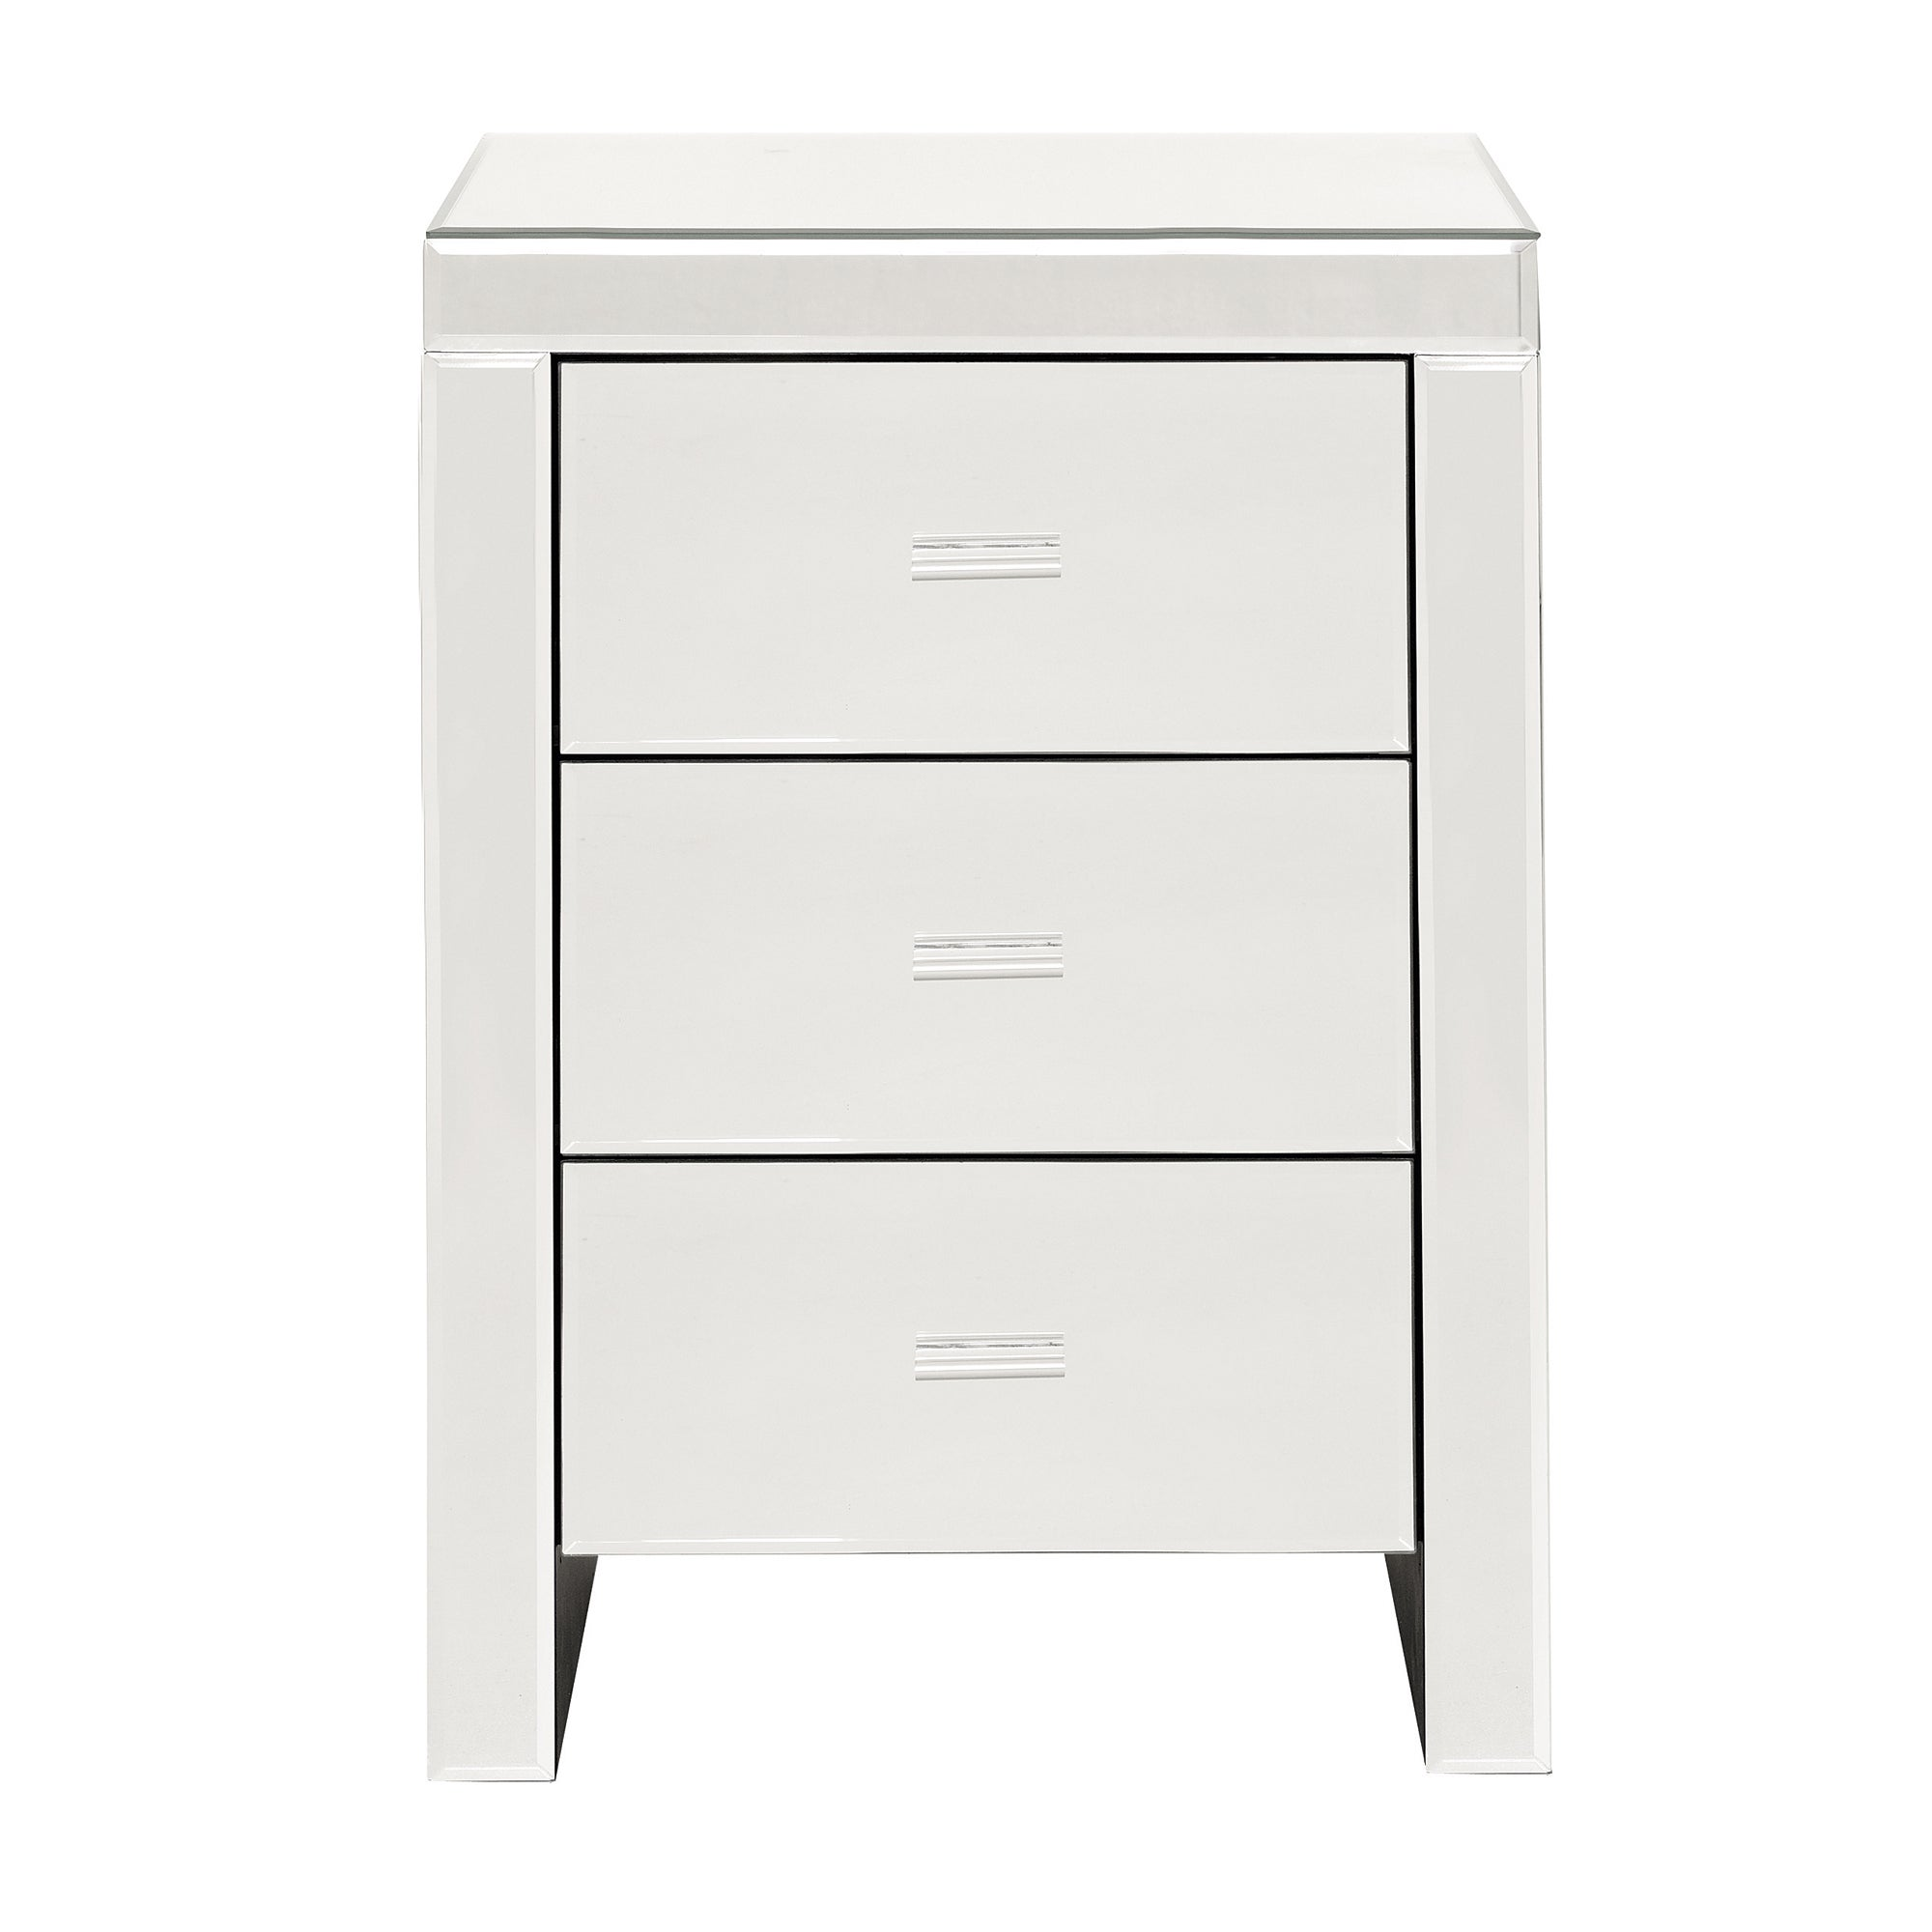 Photo of Venetian mirrored 3 drawer bedside table white